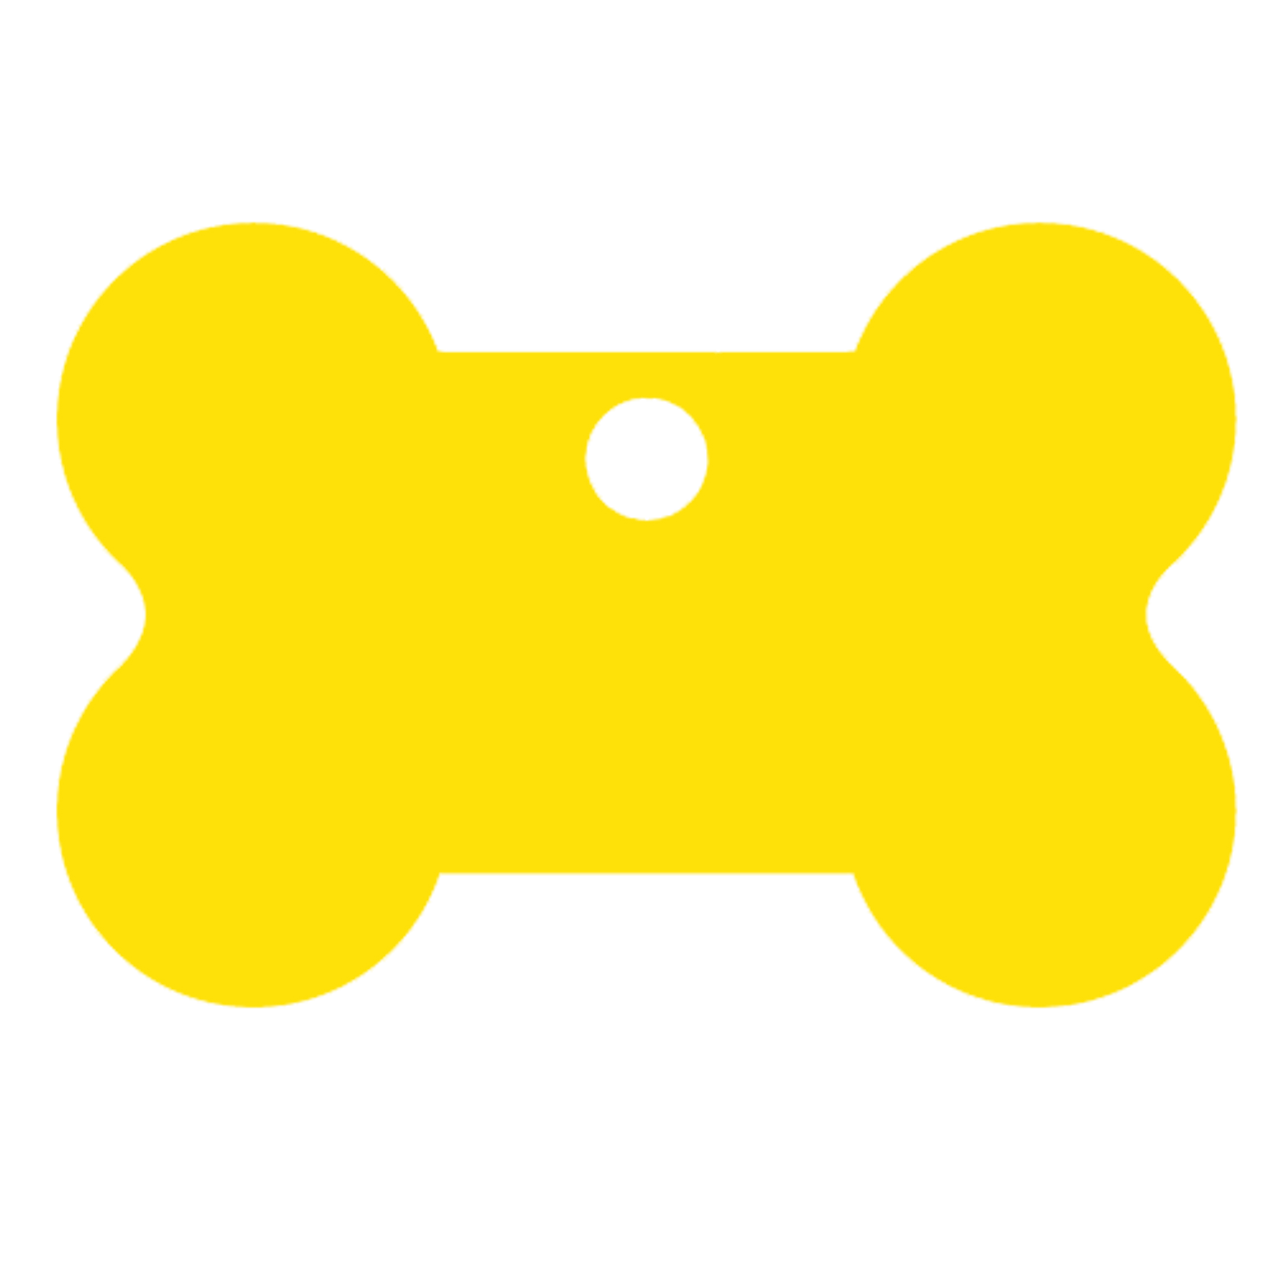 Yellow blank bone shaped pet dog tag made of anodized aluminum. This tag is commonly purchased by pet stores, animal shelters and government organizations.